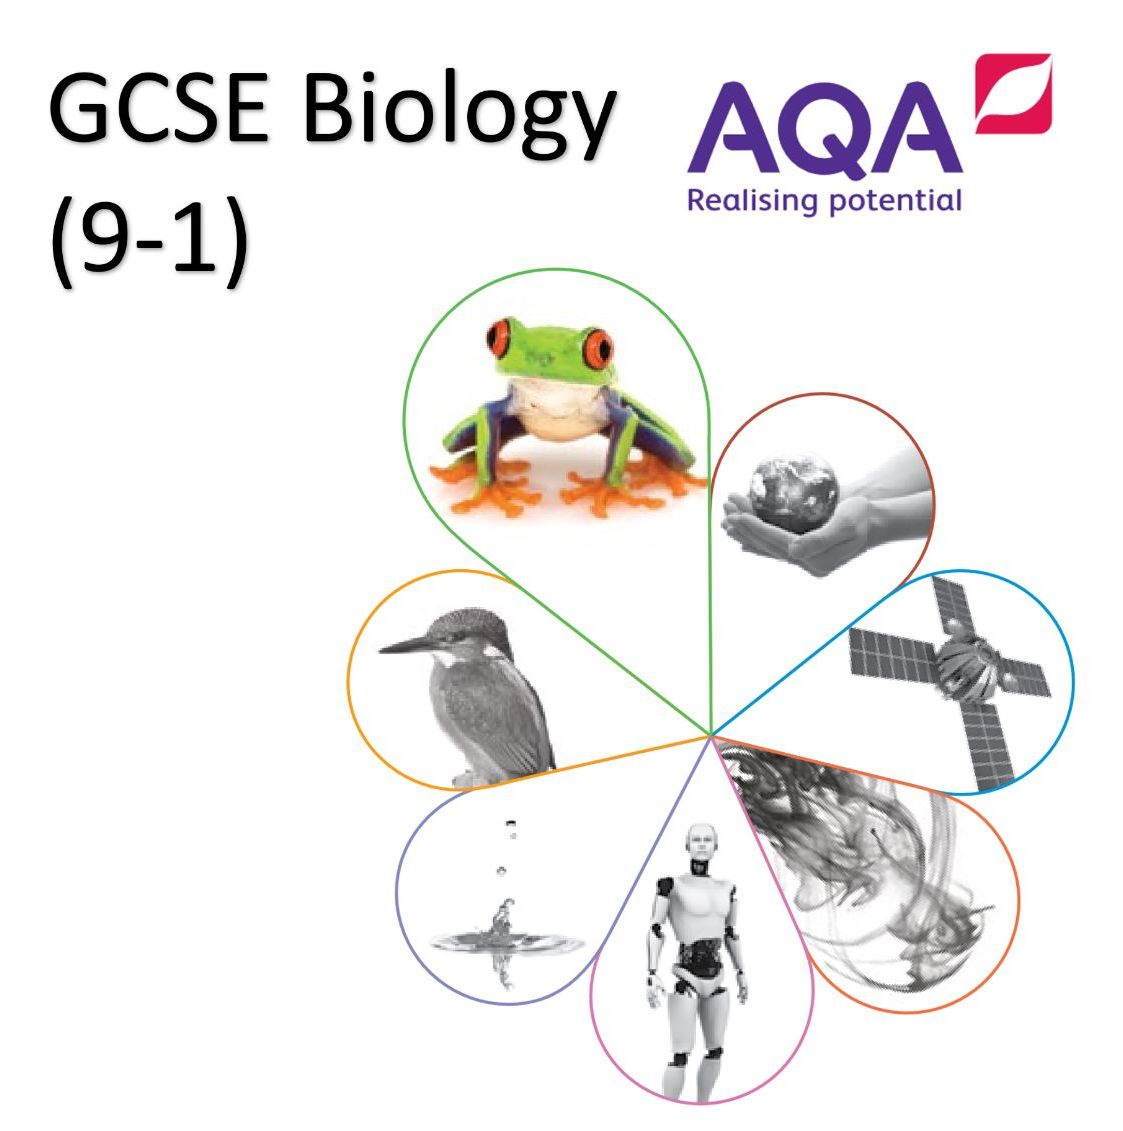 AQA GCSE Biology (9-1) Paper 1&2 Double Science Revision Summary Sheets